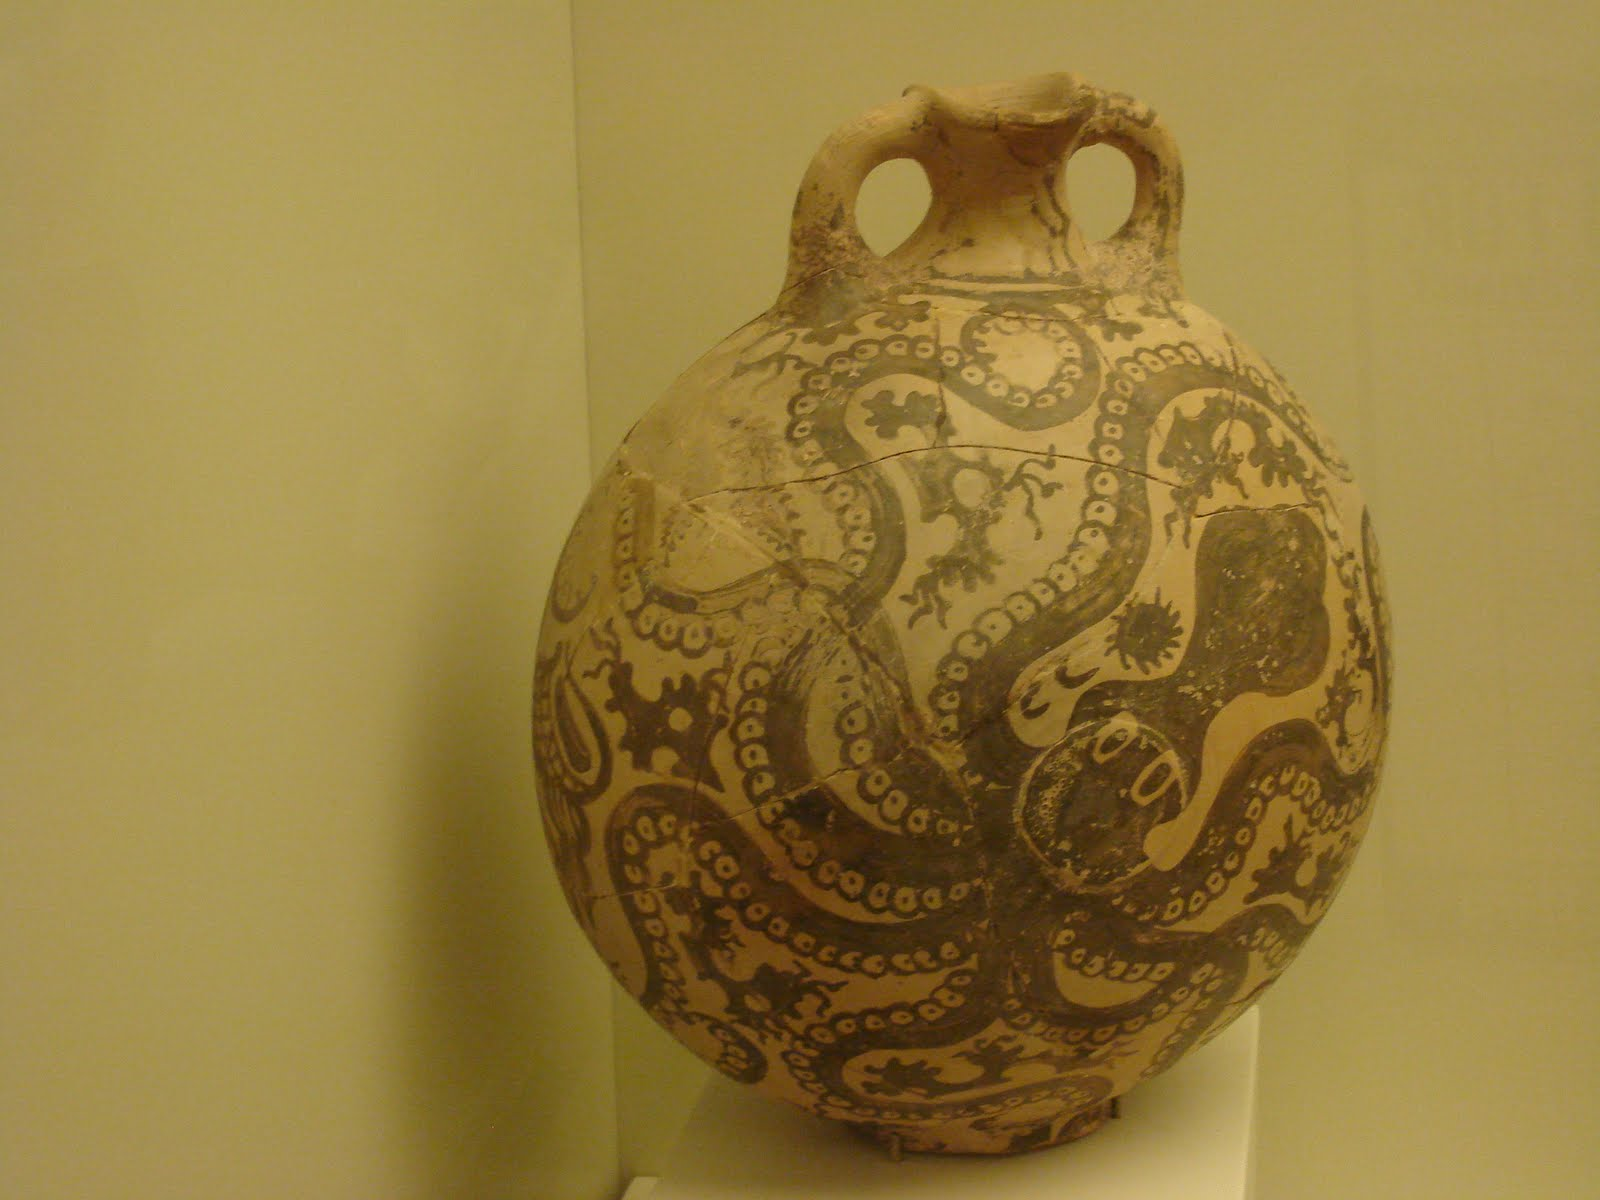 Areopagitica knossos artifacts cool octopus jar reviewsmspy